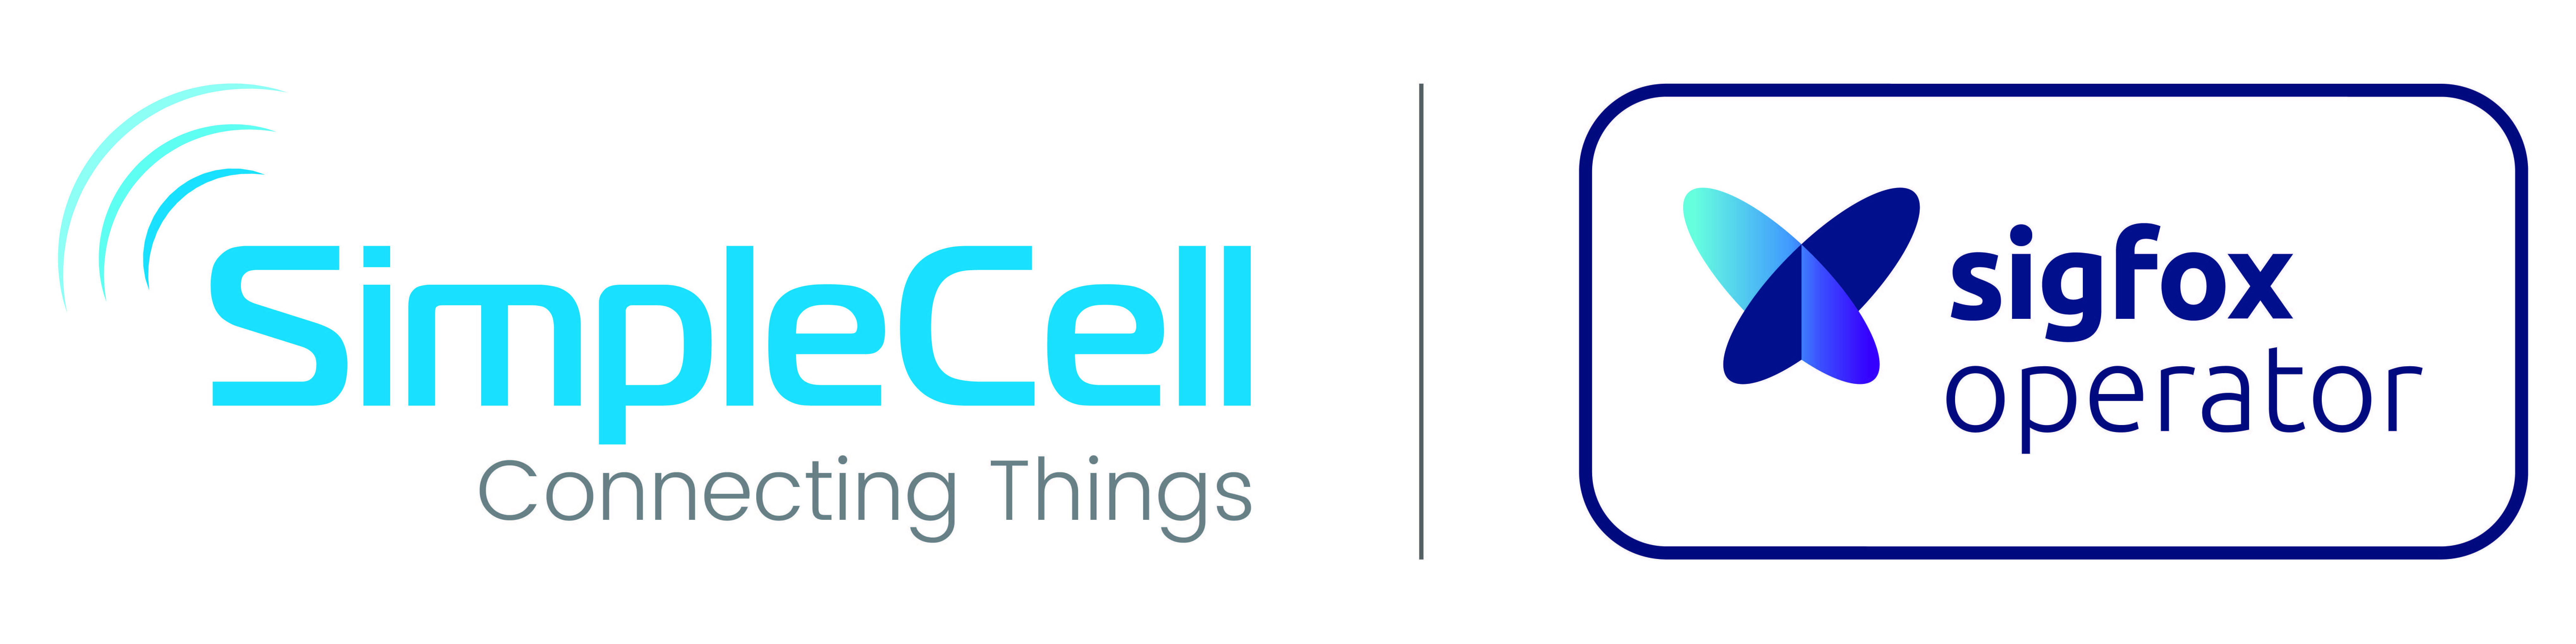 SimpleCell + Sigfox1